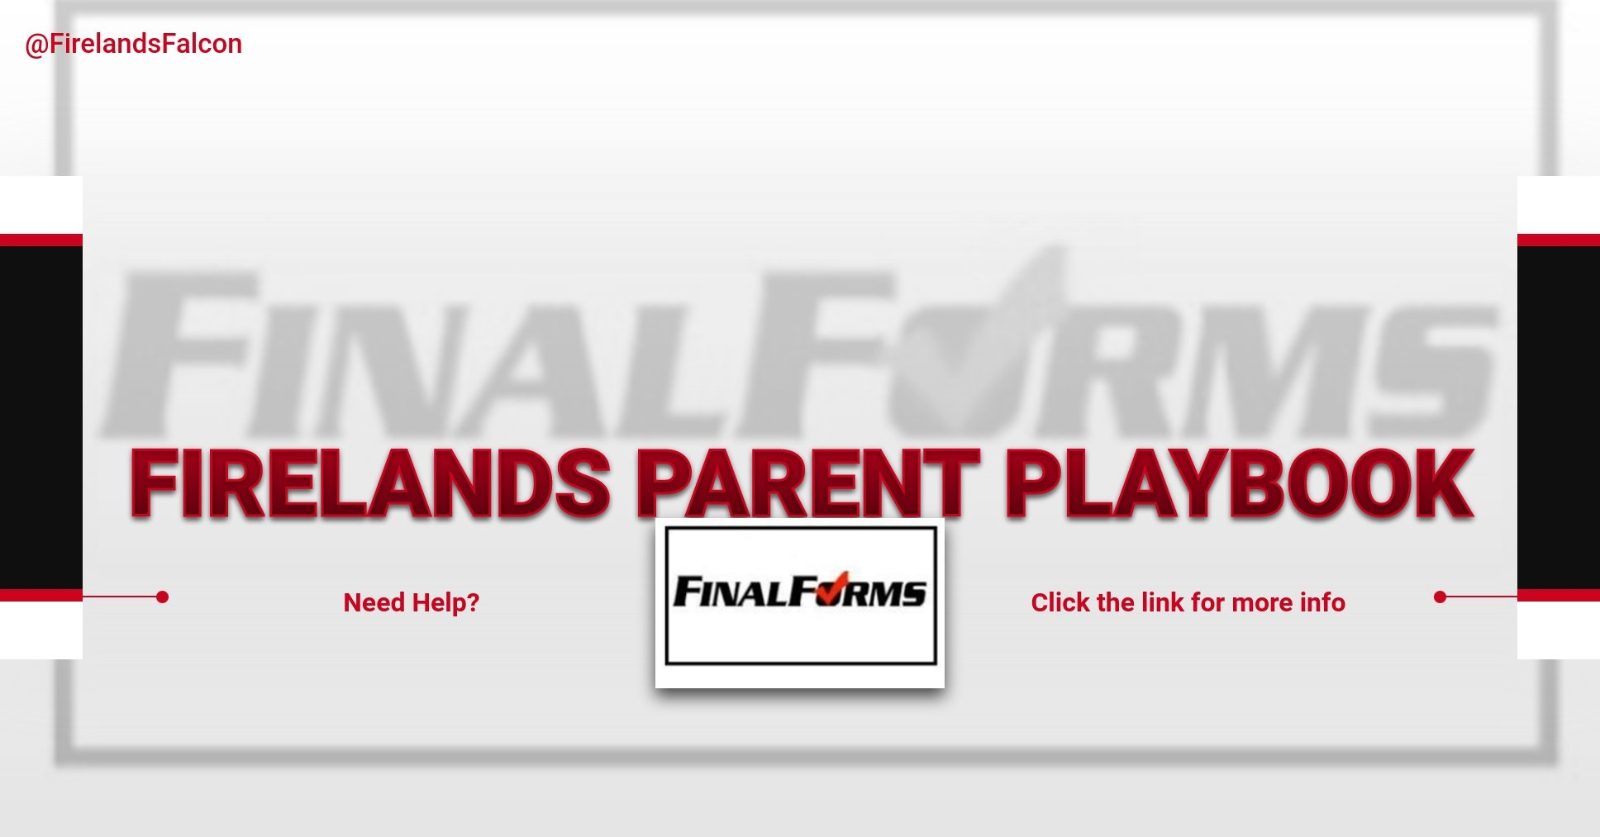 Need help with Final Forms?- Check out the Firelands Parent Playbook